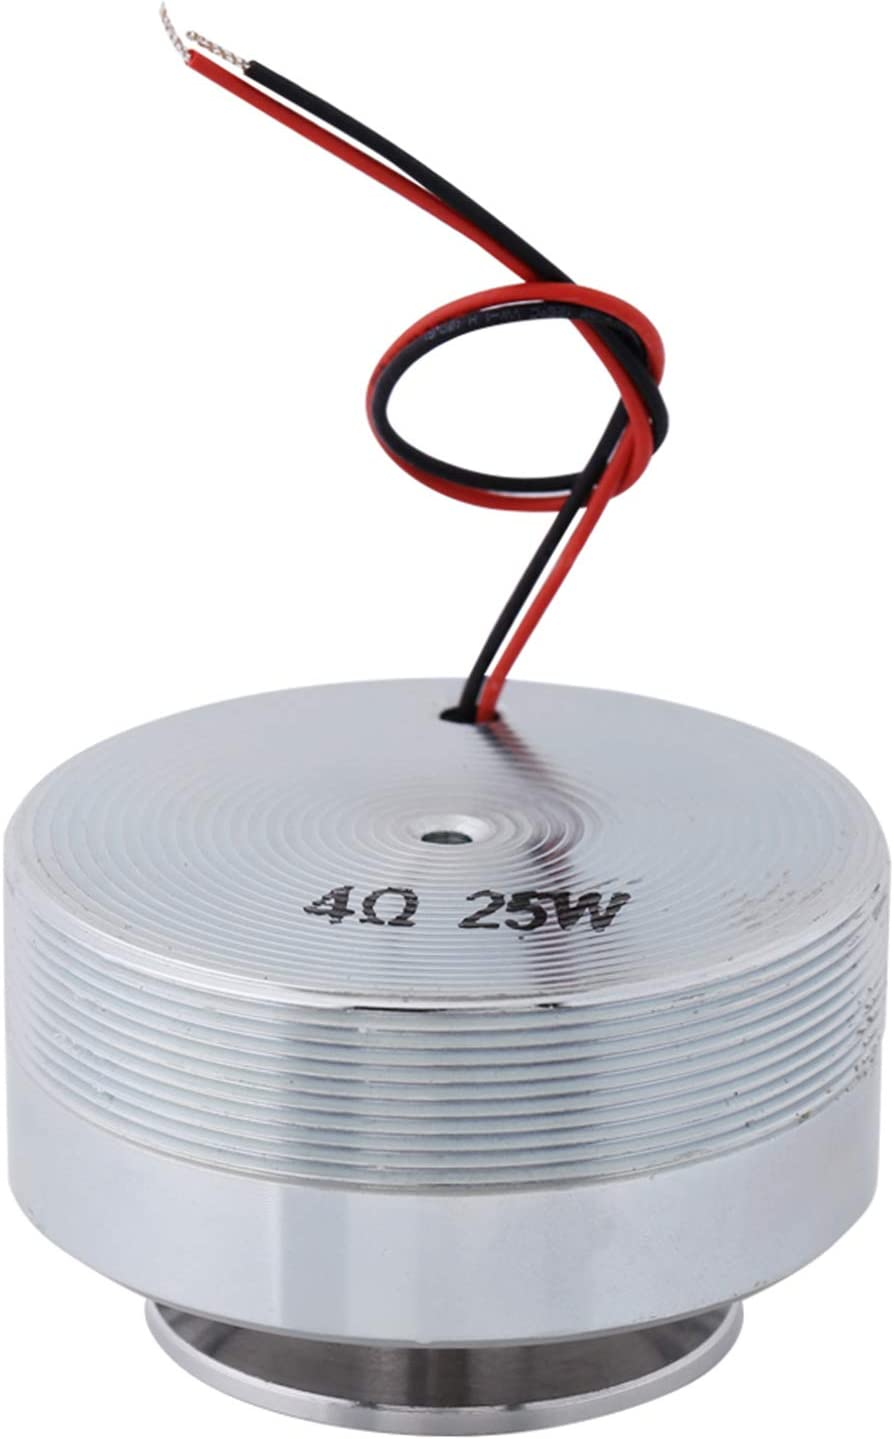 Very popular Nikou Vibration Speaker-360° Purchase Frequency p Strong Transmission